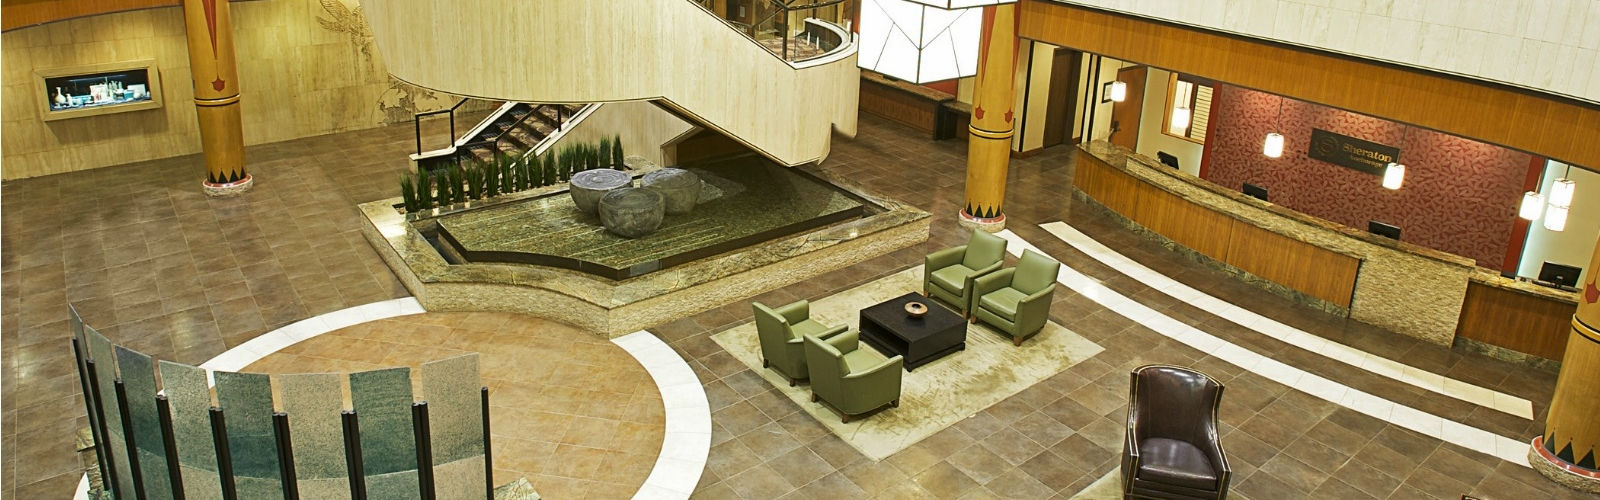 Sheraton Anchorage Hotel - Lobby